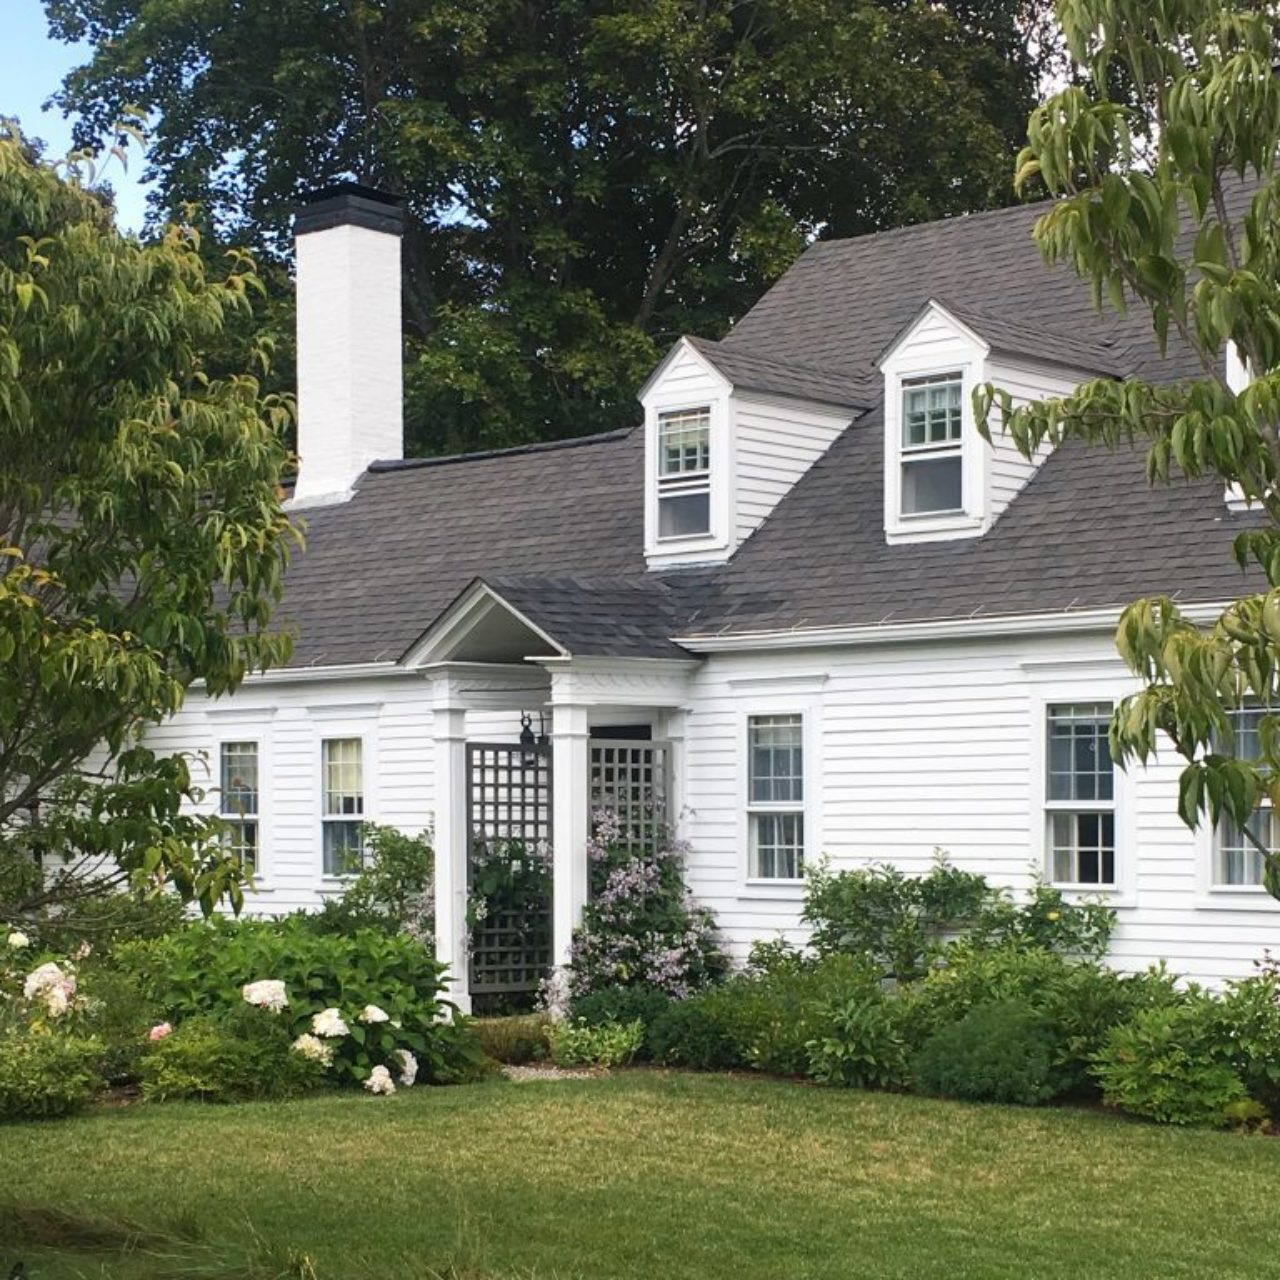 The Farm House, designed by Arthur McFarland